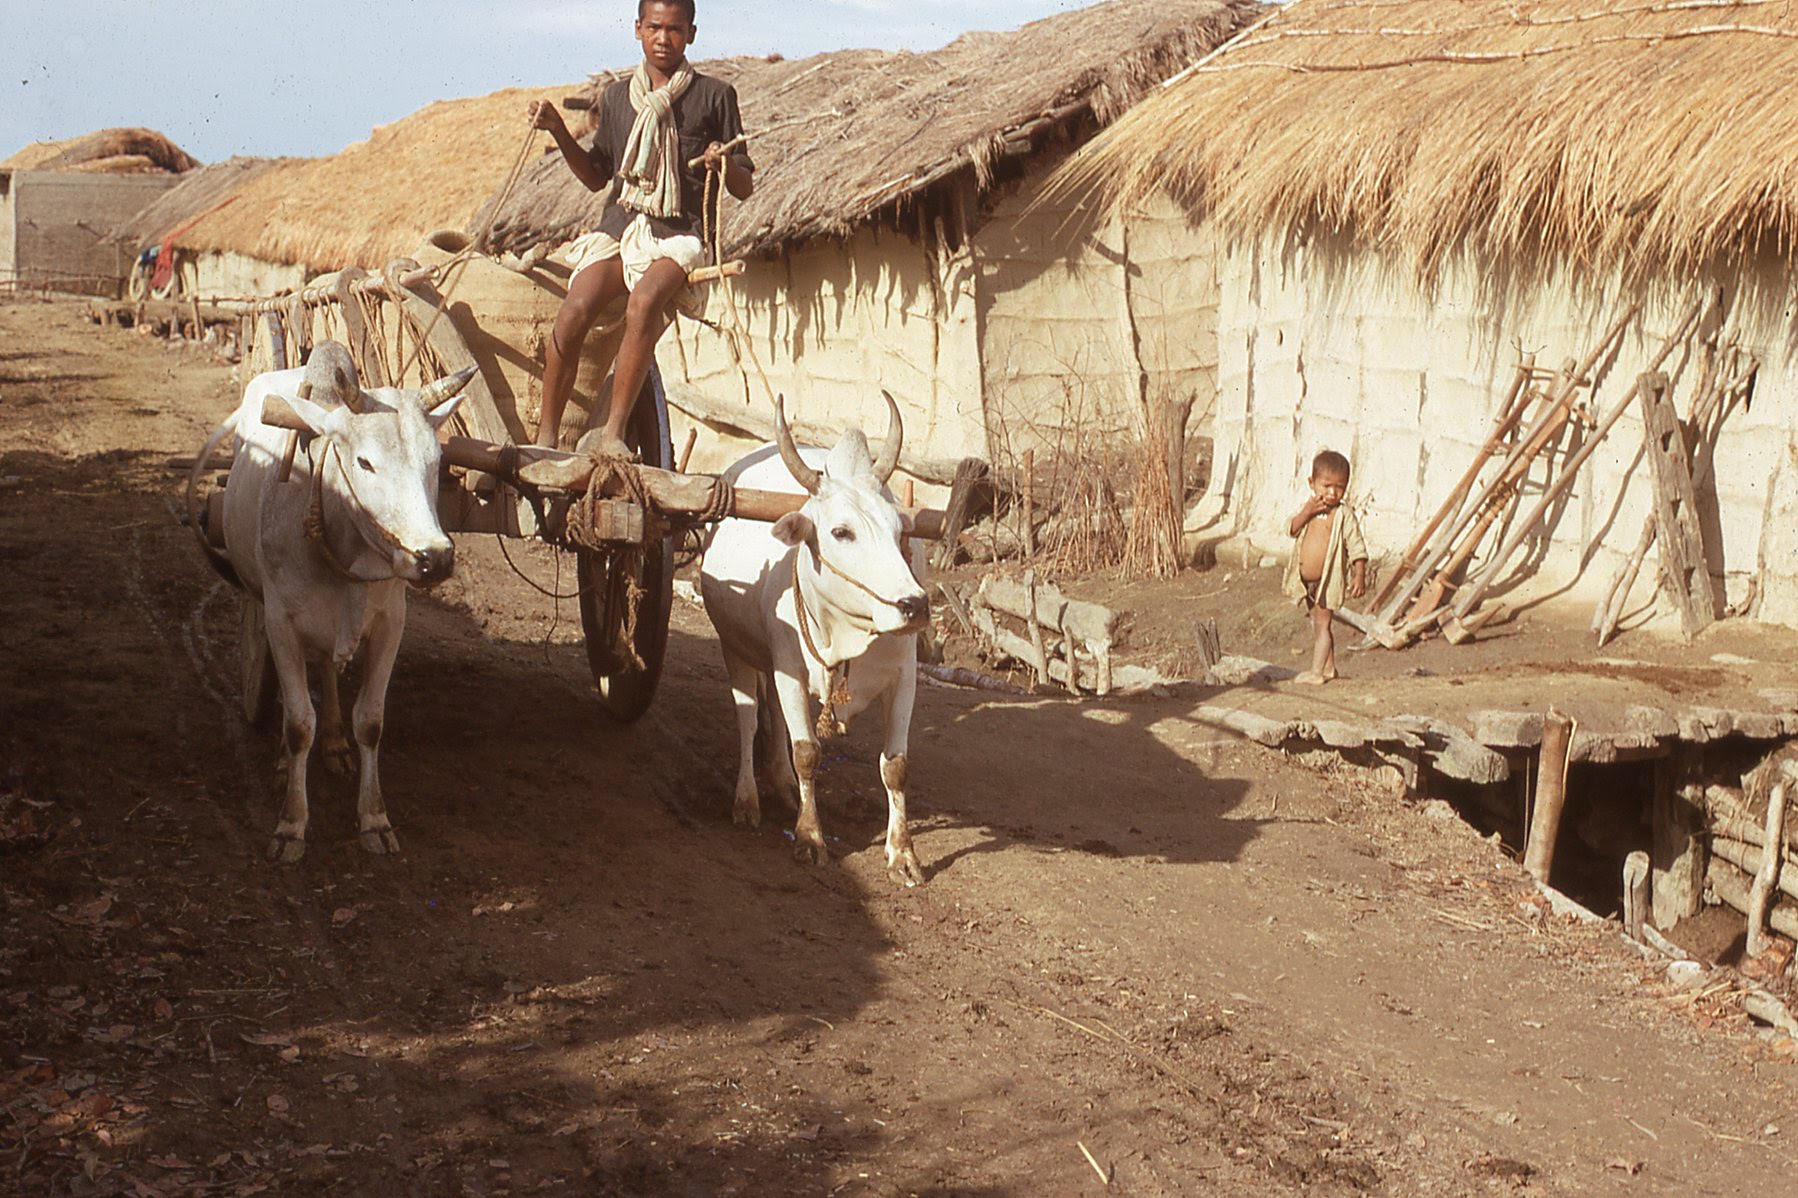 A man rides through village carrying grain on an ox cart, led by two oxes, as a child looks on from a walkway between the houses.